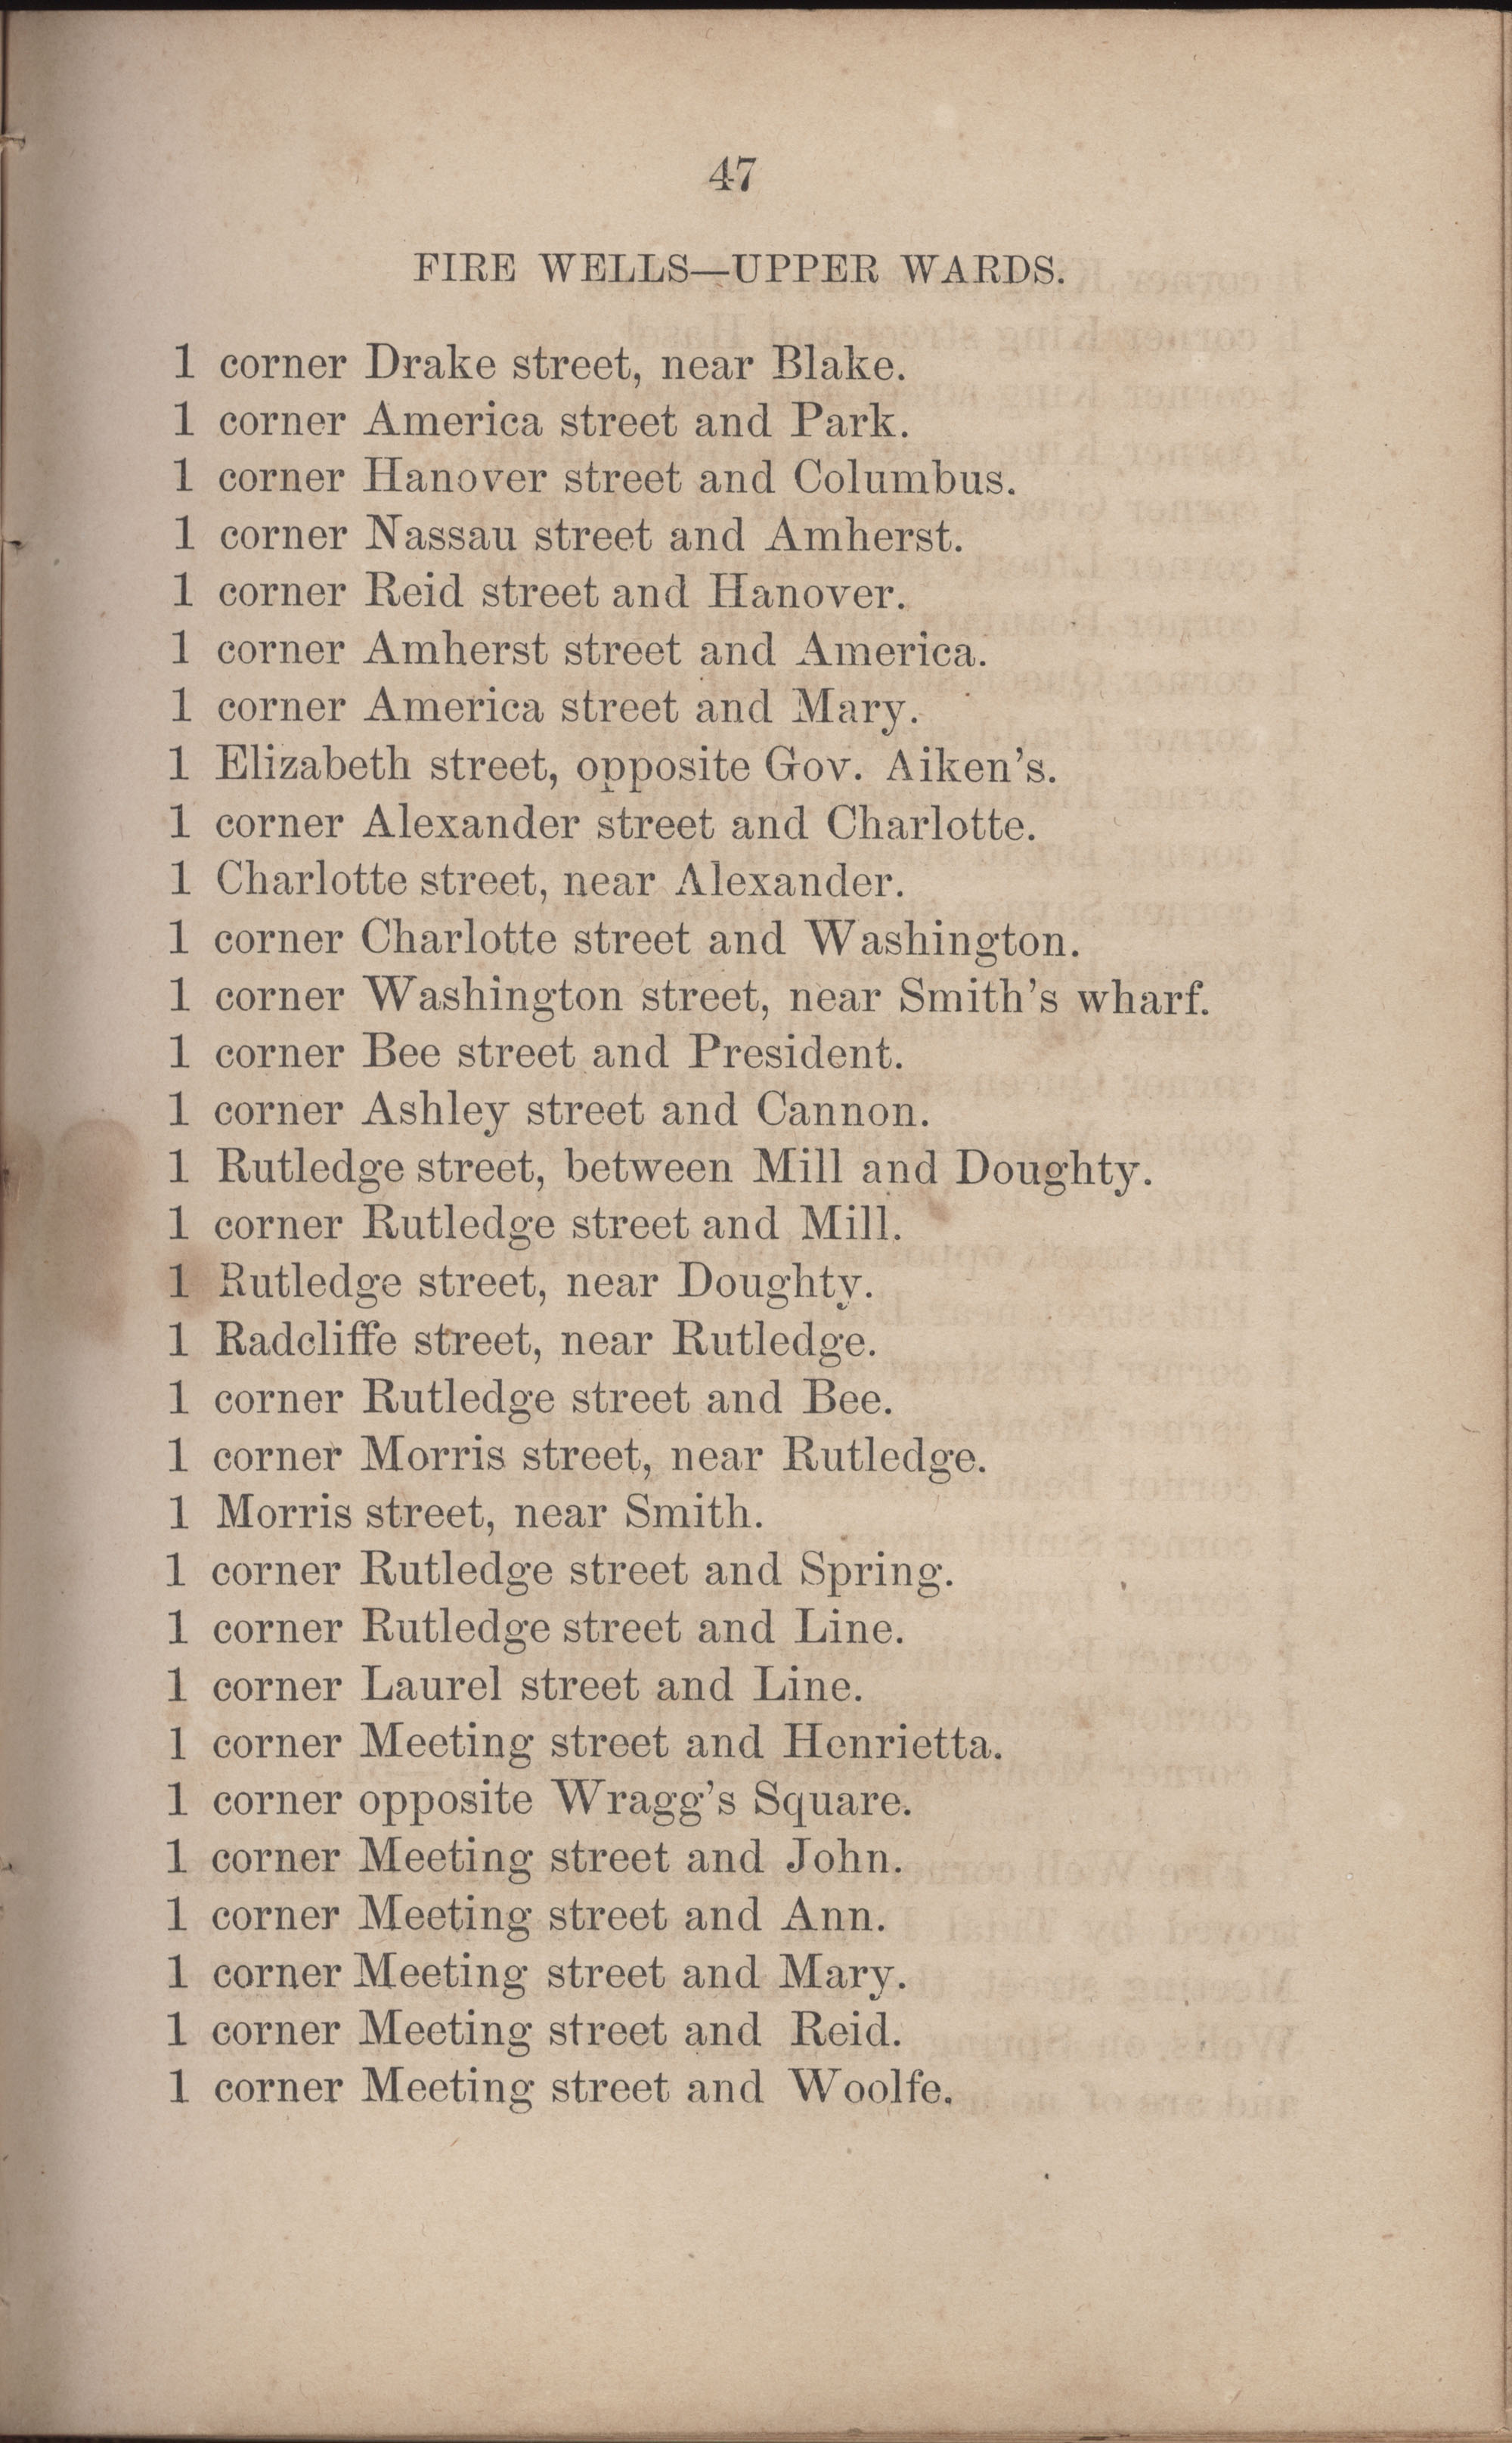 Annual Report of the Chief of the Fire Department of the City of Charleston, page 274